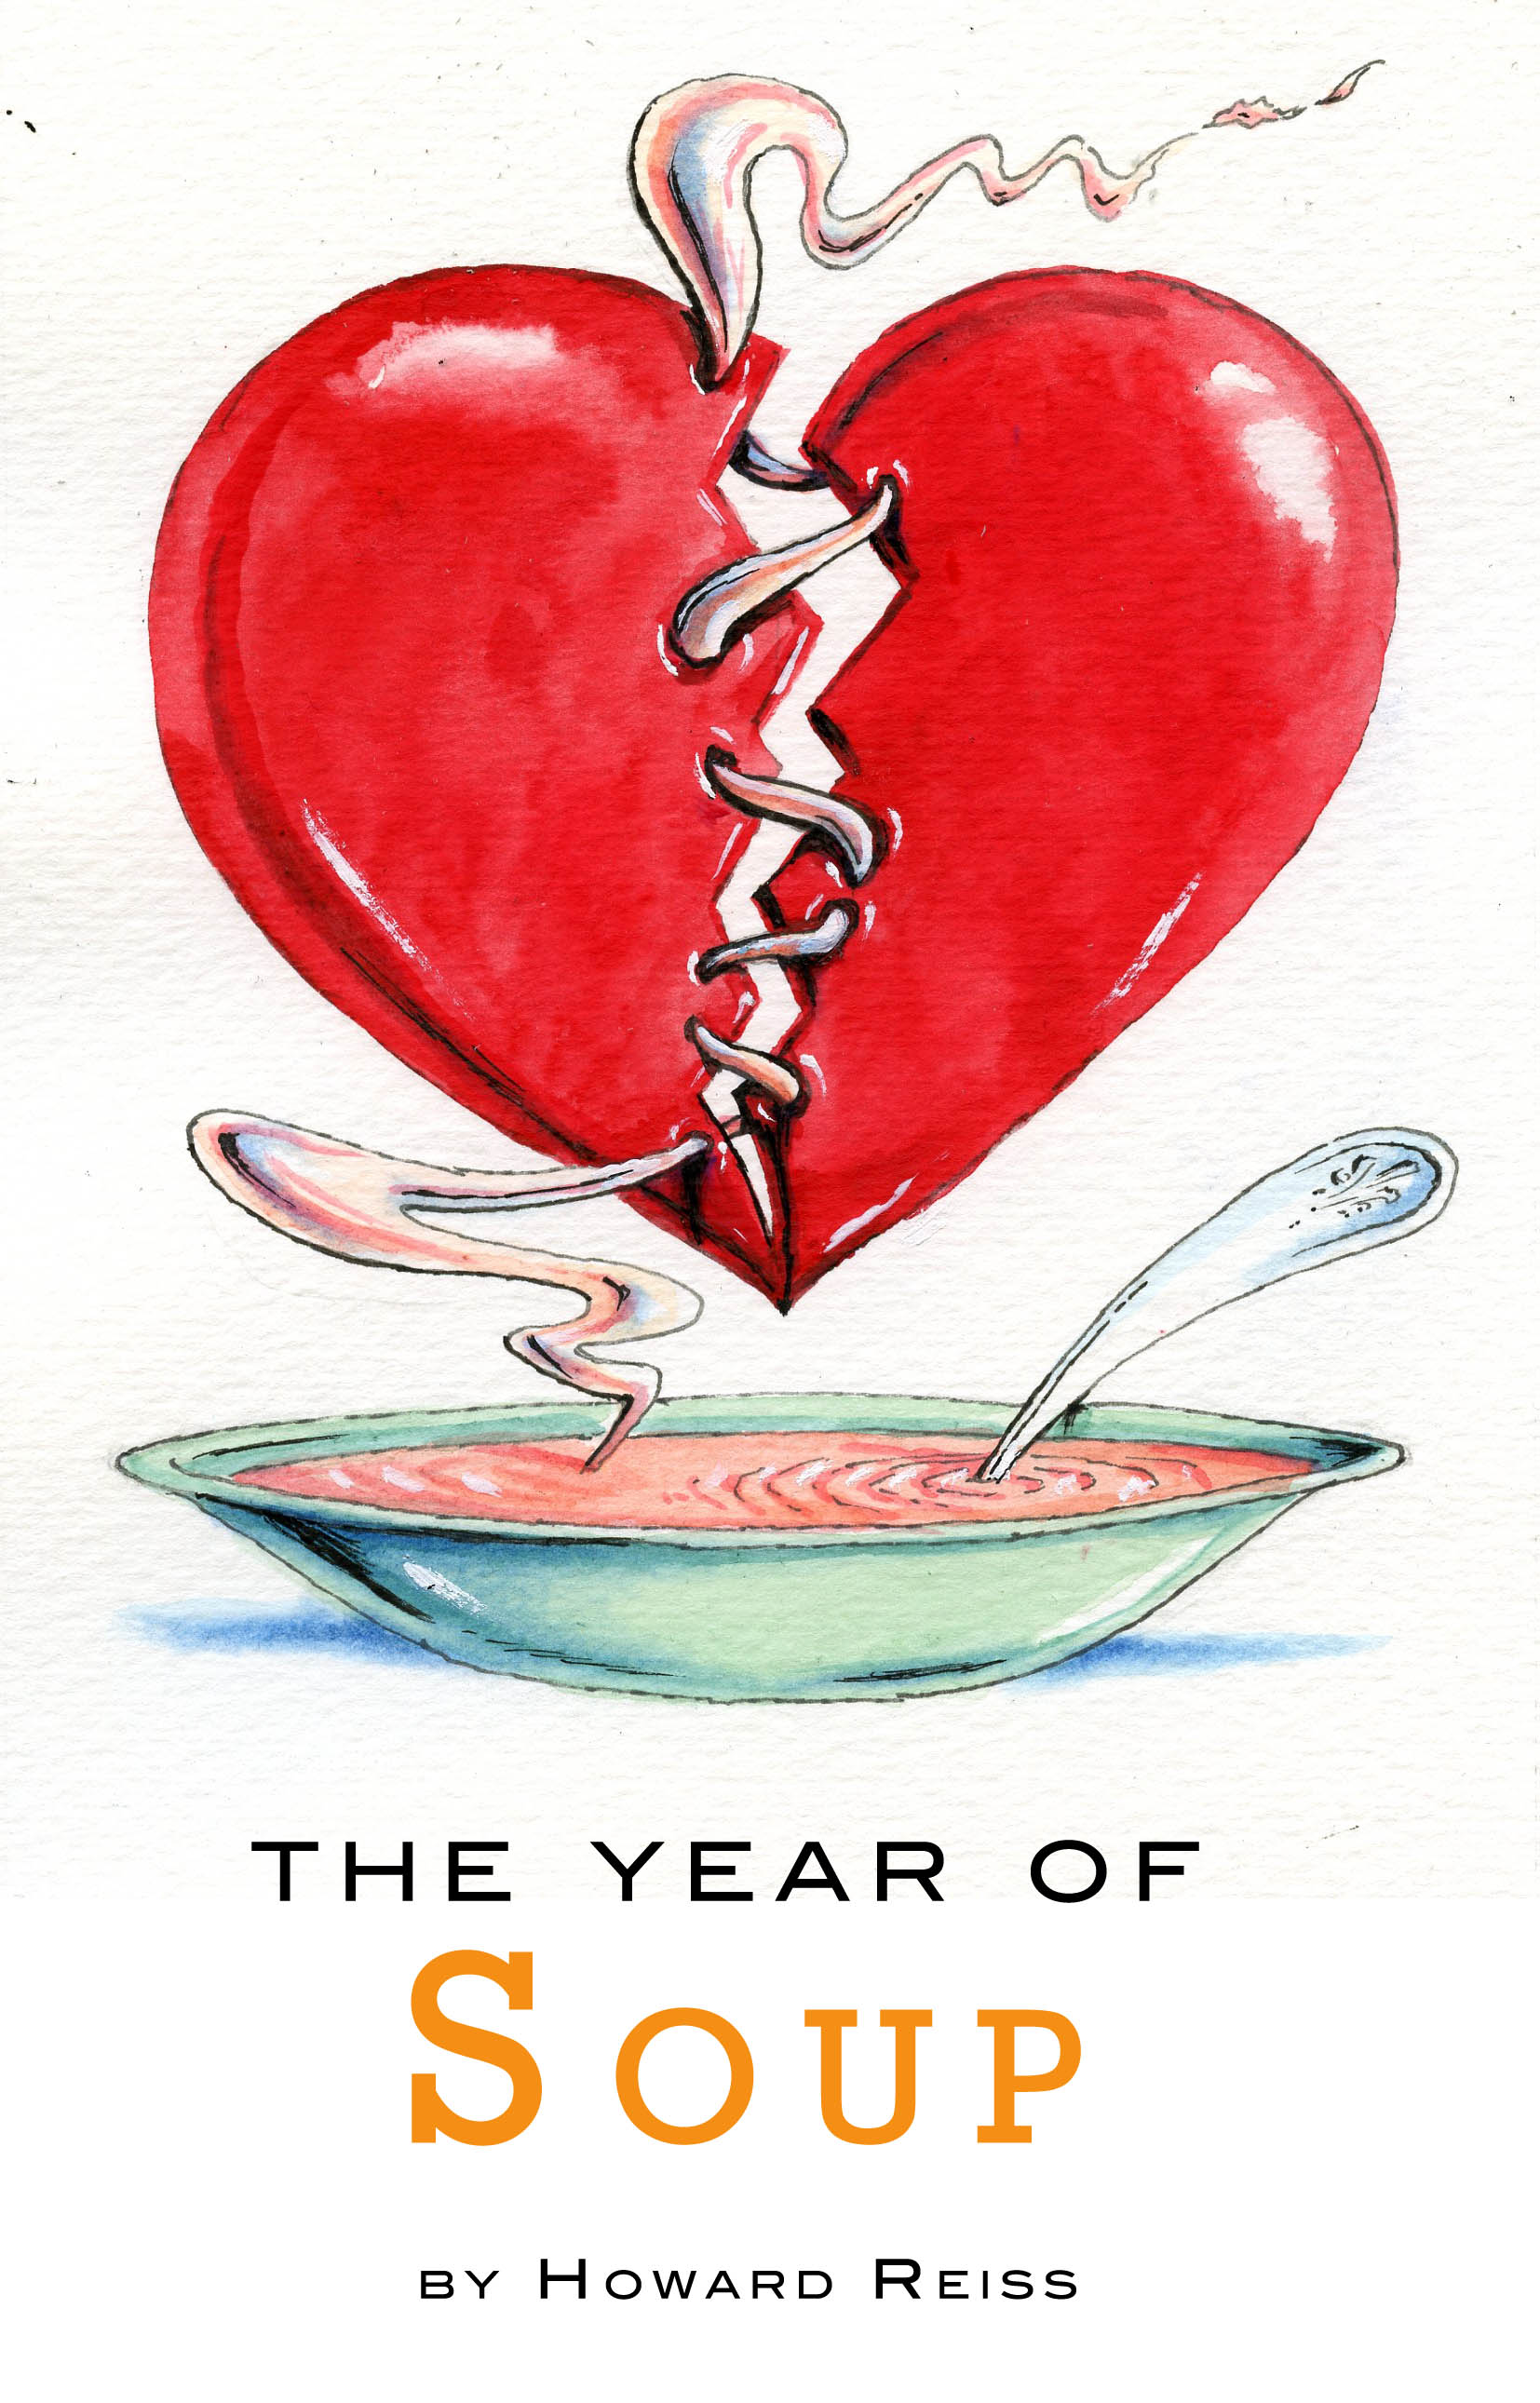 The Year of Soup - Silver Medal Winner for Best Regional Fiction in the Northeast Region in the 2013 Independent Publisher Book AwardsWon an Honorable Mention in the Romance category of the 2016 Los Angeles Book FestivalBookBub calls The Year of Soup